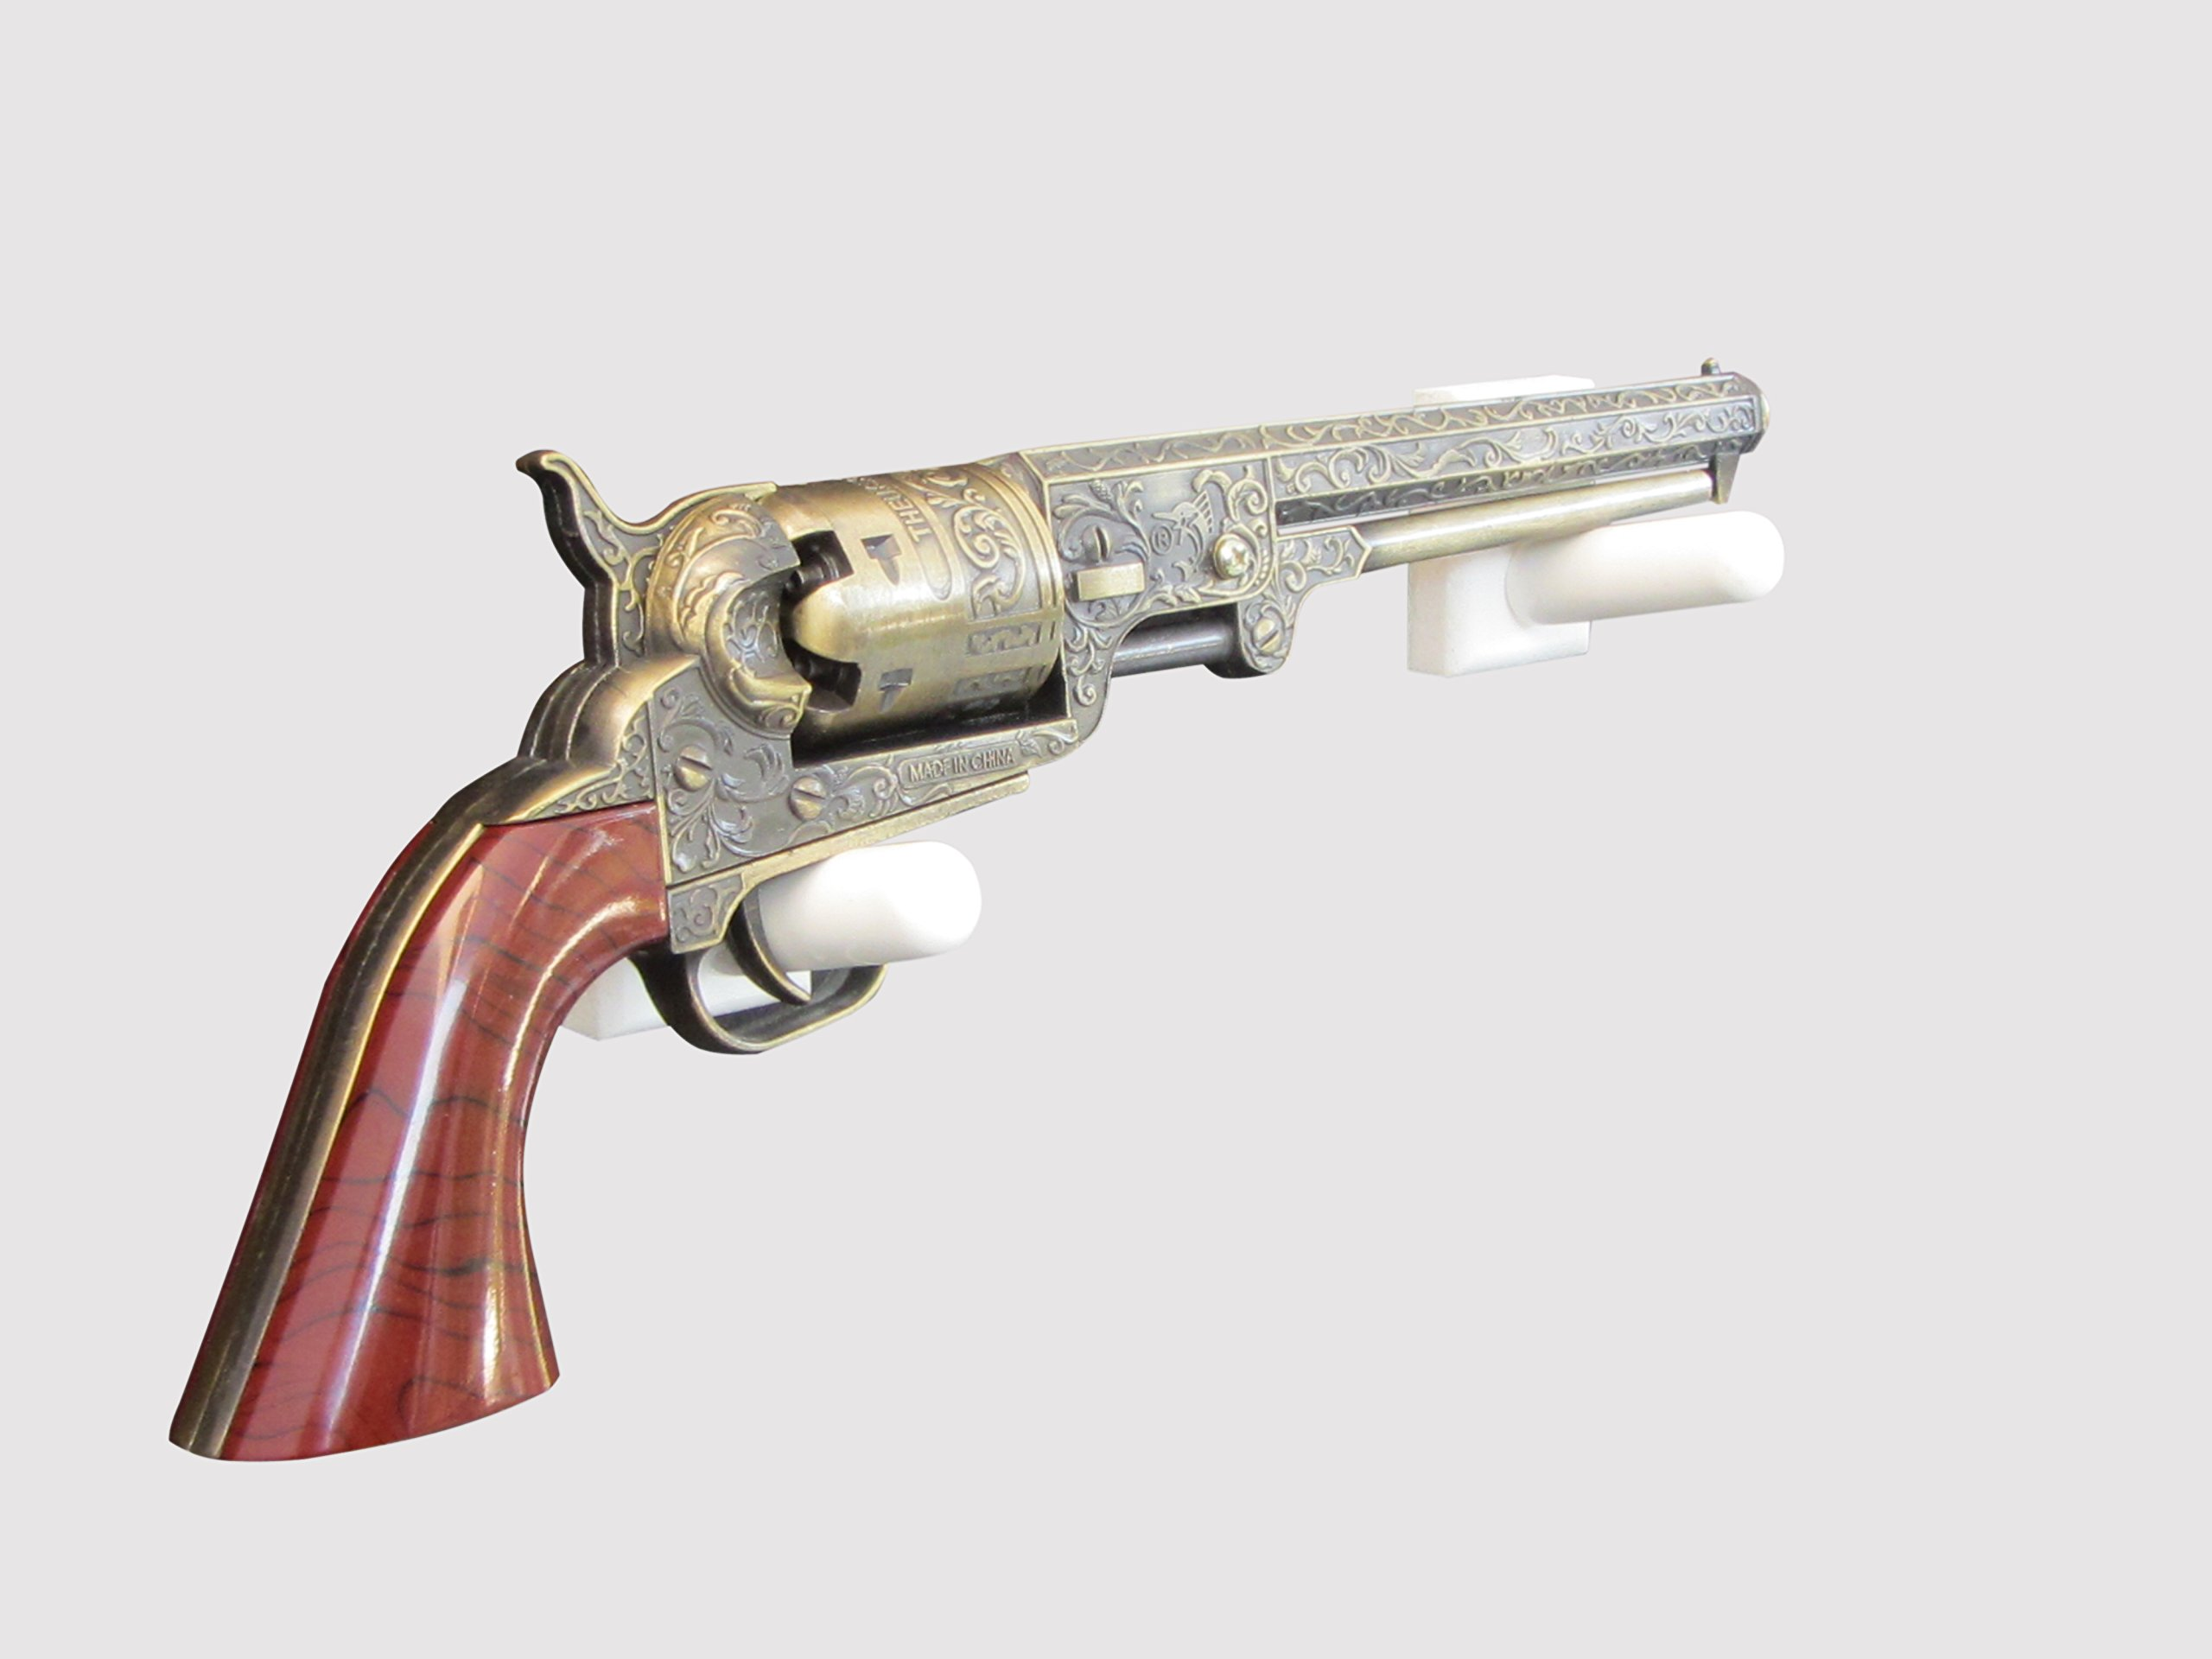 Gun Ideas Horizontal Wall Mount for a Civil War Revolver (Made in the USA) (White)